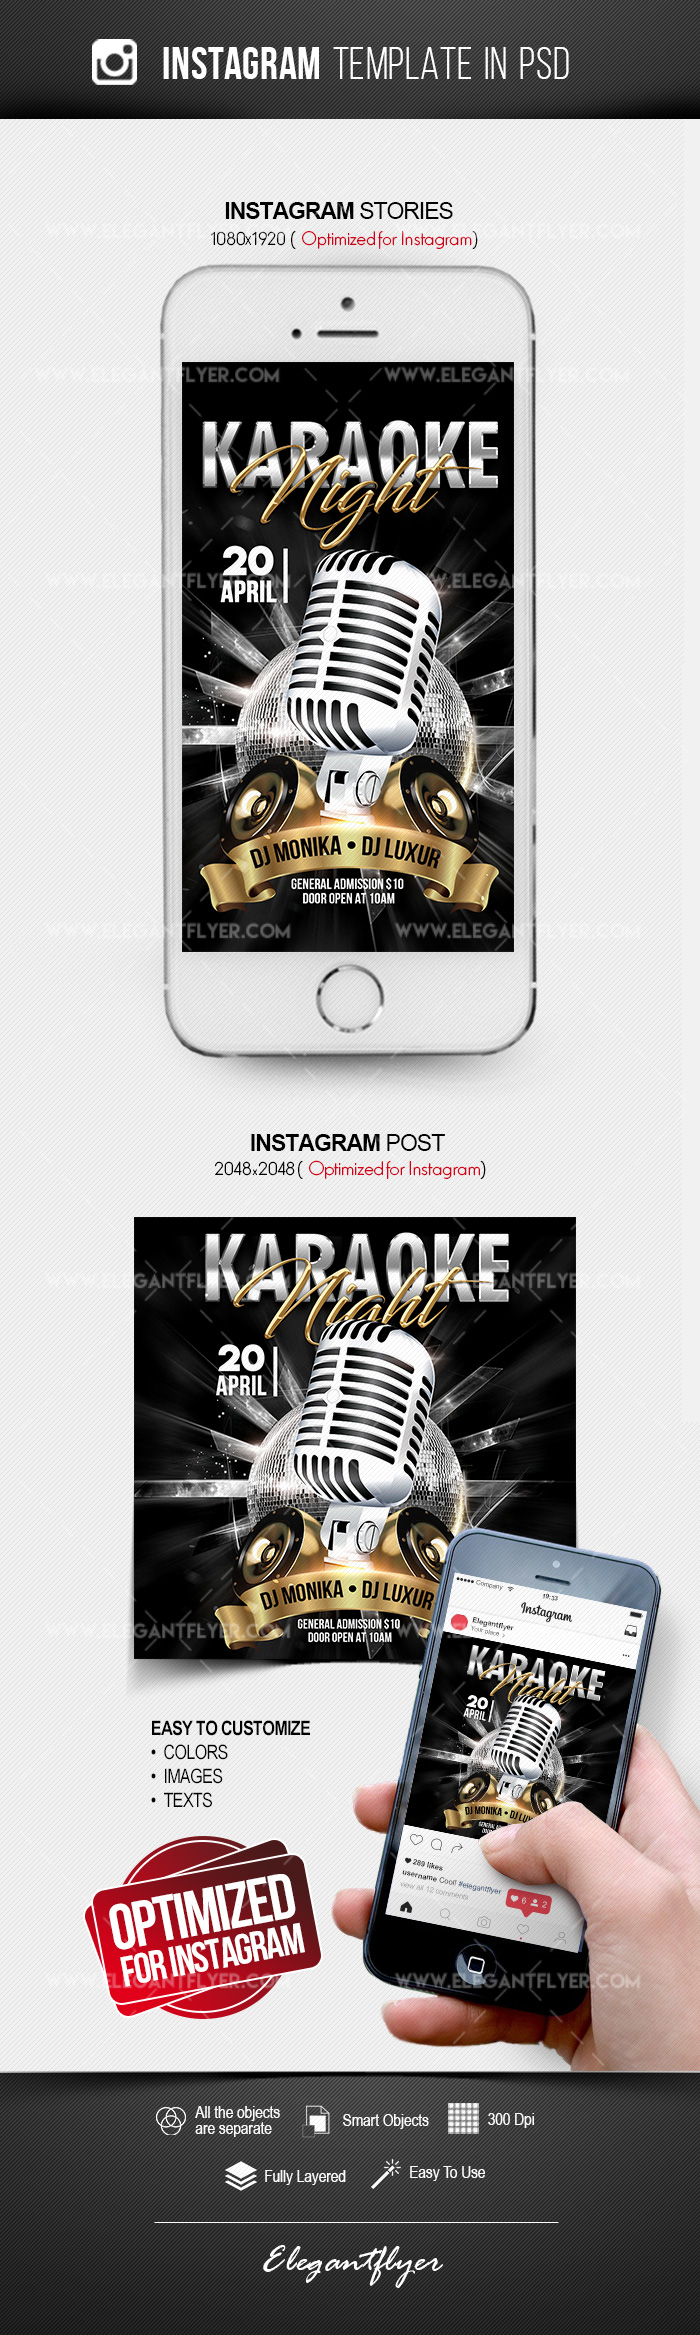 Karaoke Night – Free Instagram Stories Template in PSD + Post Templates